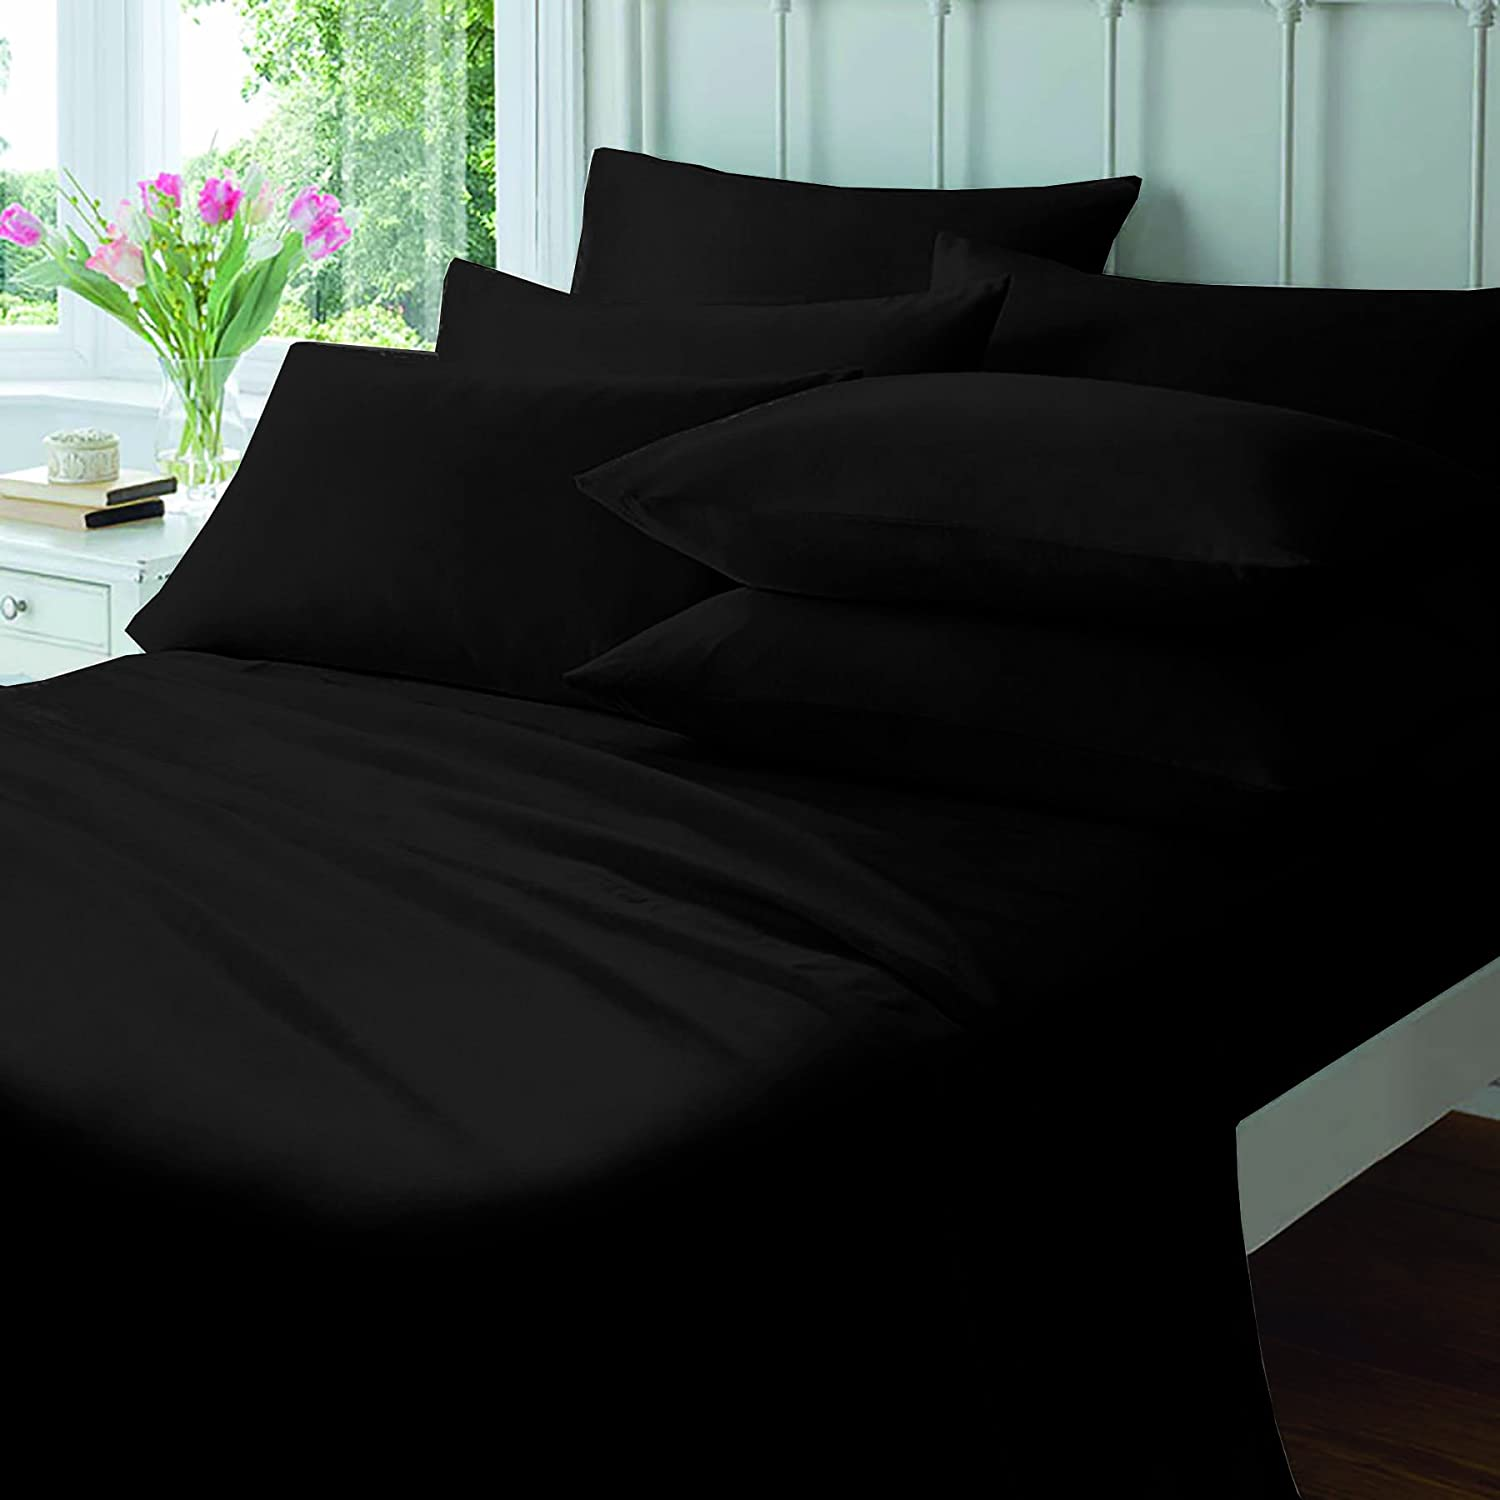 Black Blue PolyCotton Blend 50:50 Flat Sheet By Sleep&Smile : King Size Black